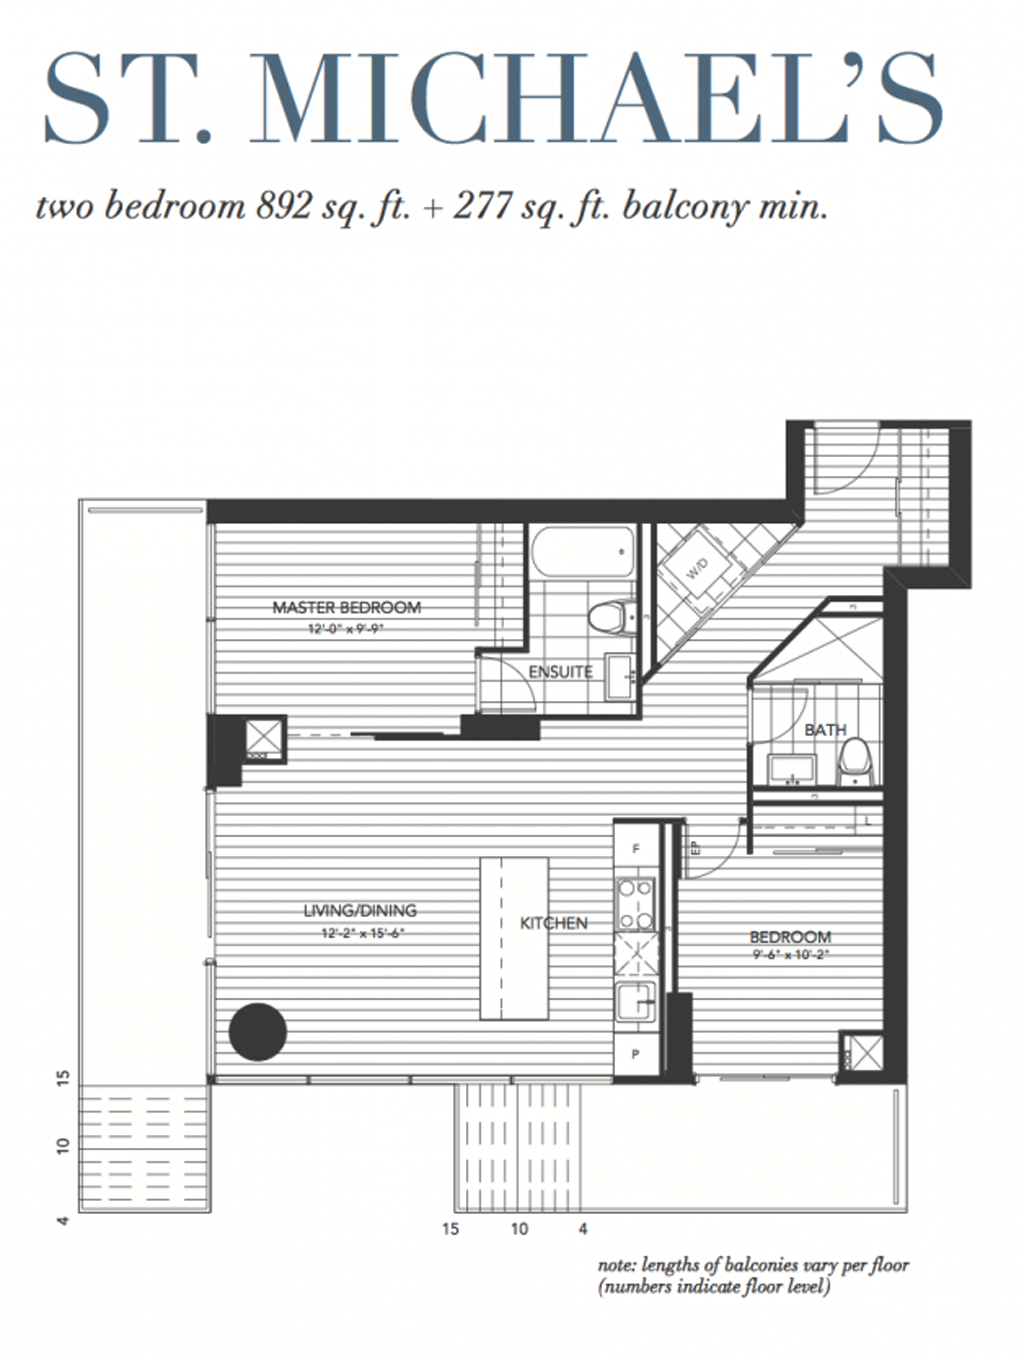 U CONDOS - FLOORPLANS TWO BED 892 SQ FT - CONTACT YOSSI KAPLAN